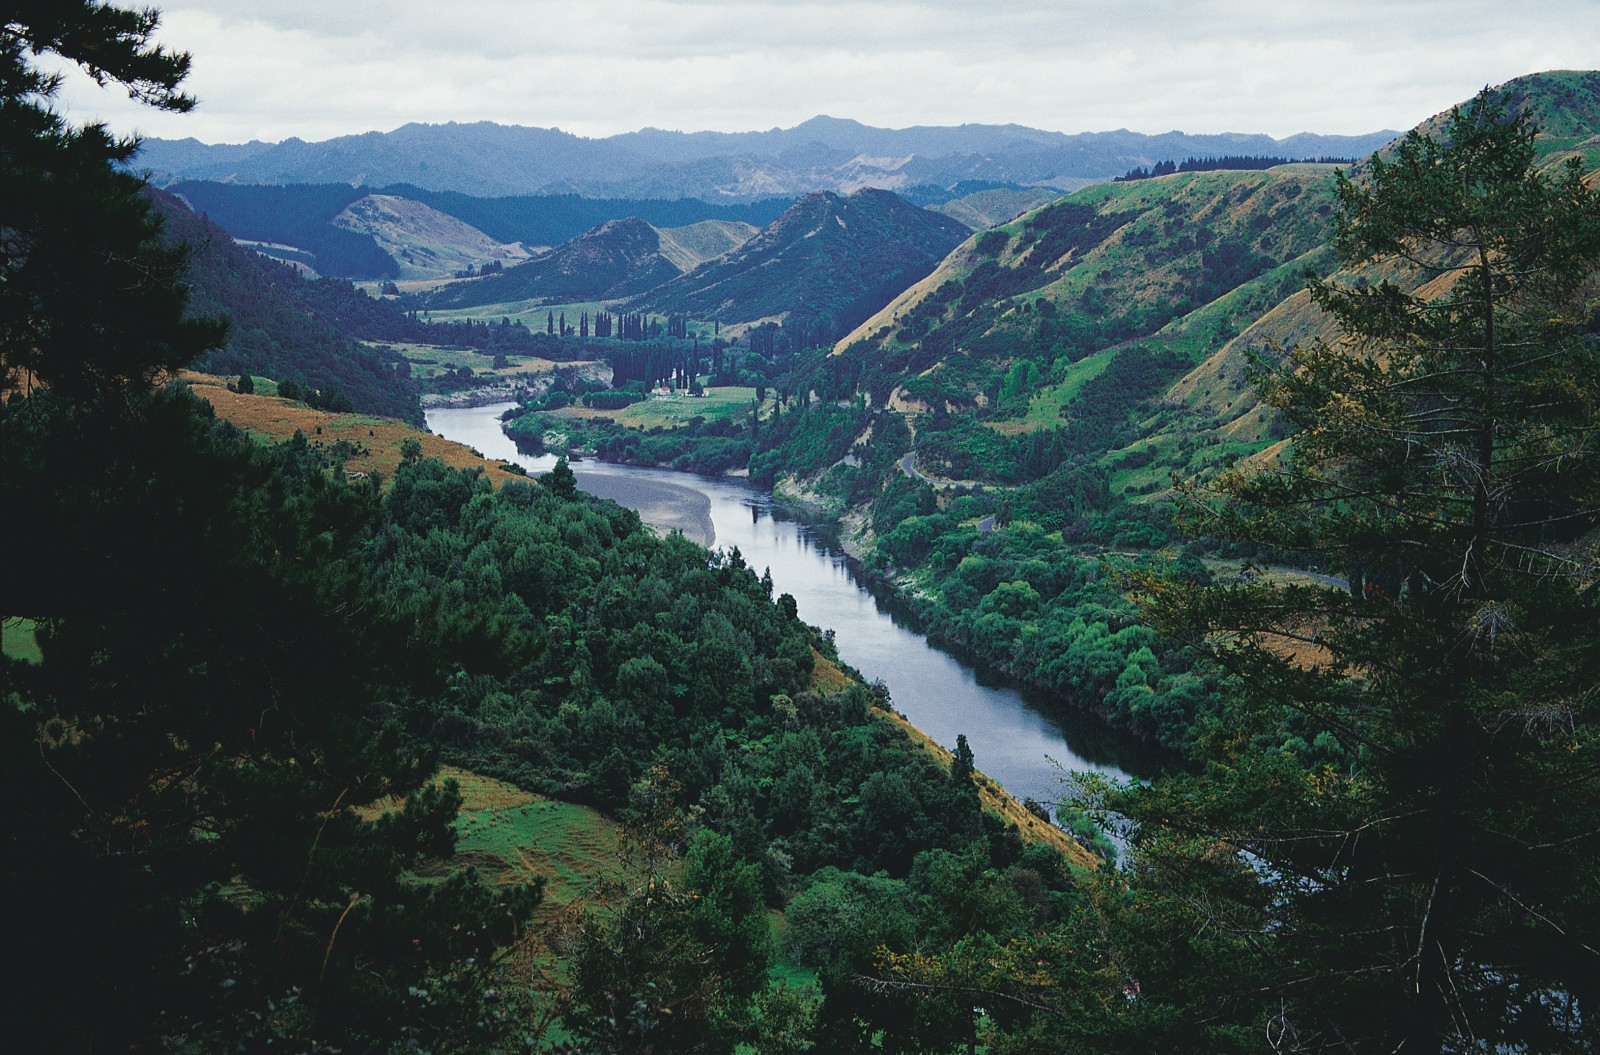 "The Whanganui River, extravagantly billed in early advertisements as New Zealand's ""Rhine,"" winds through the rugged backcountry west of the North Island volcanic plateau. Before the completion of the Main Trunk railway line, its sylvan waters bore travellers on the overland journey from Auckland to Wellington, and became a highlight of the Edwardian tourist trail."